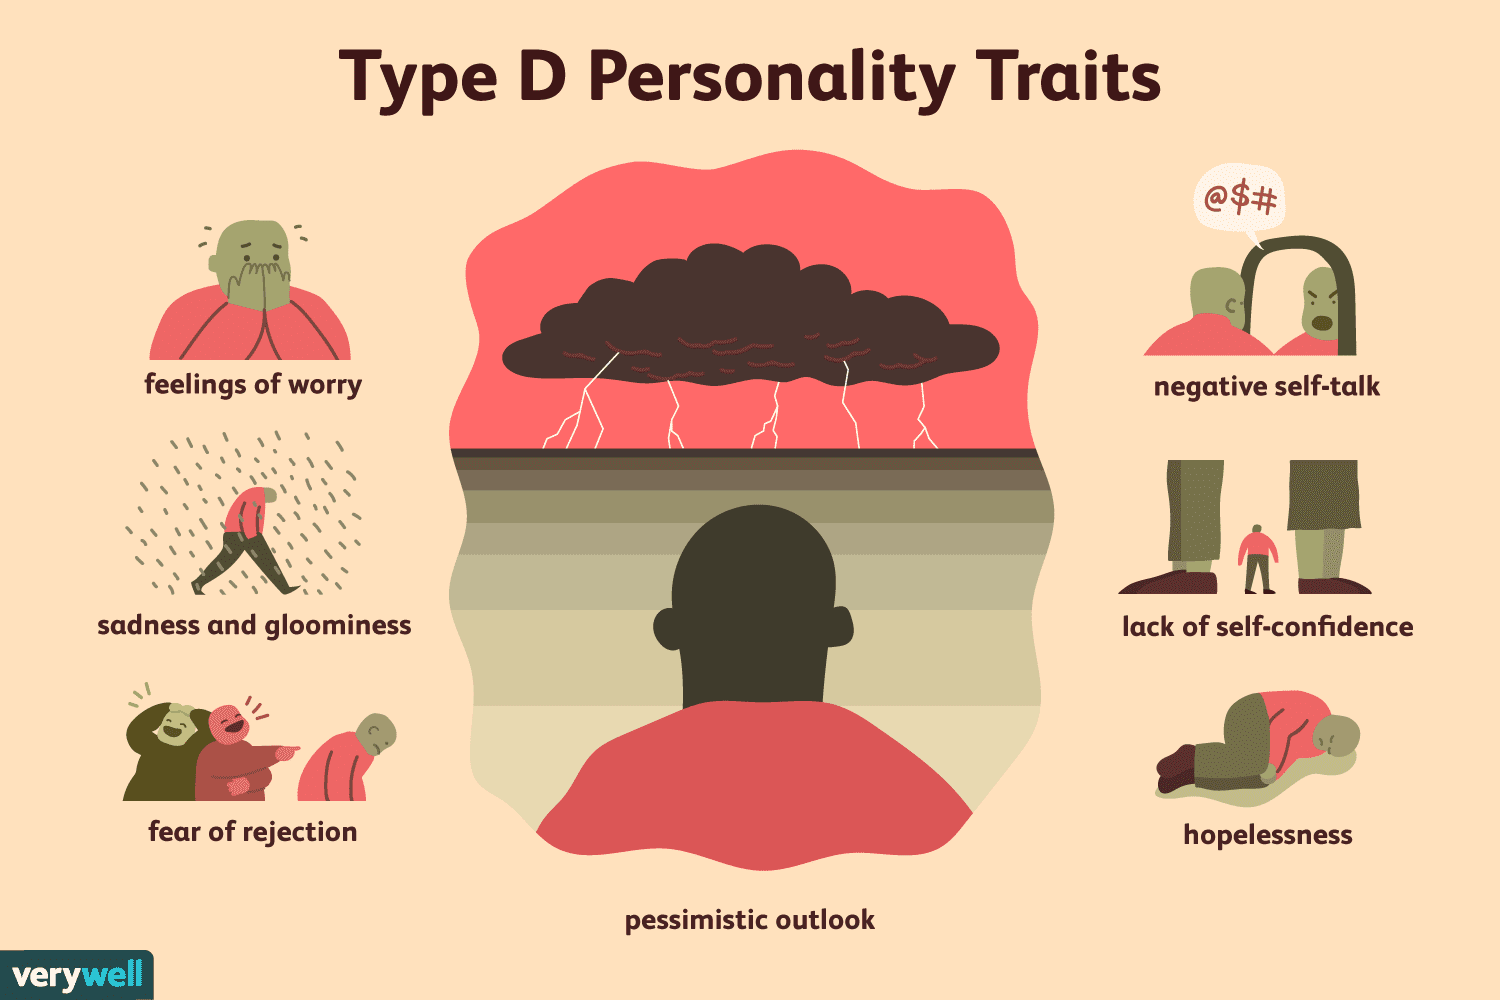 What Does It Mean to Have Type D Personality?